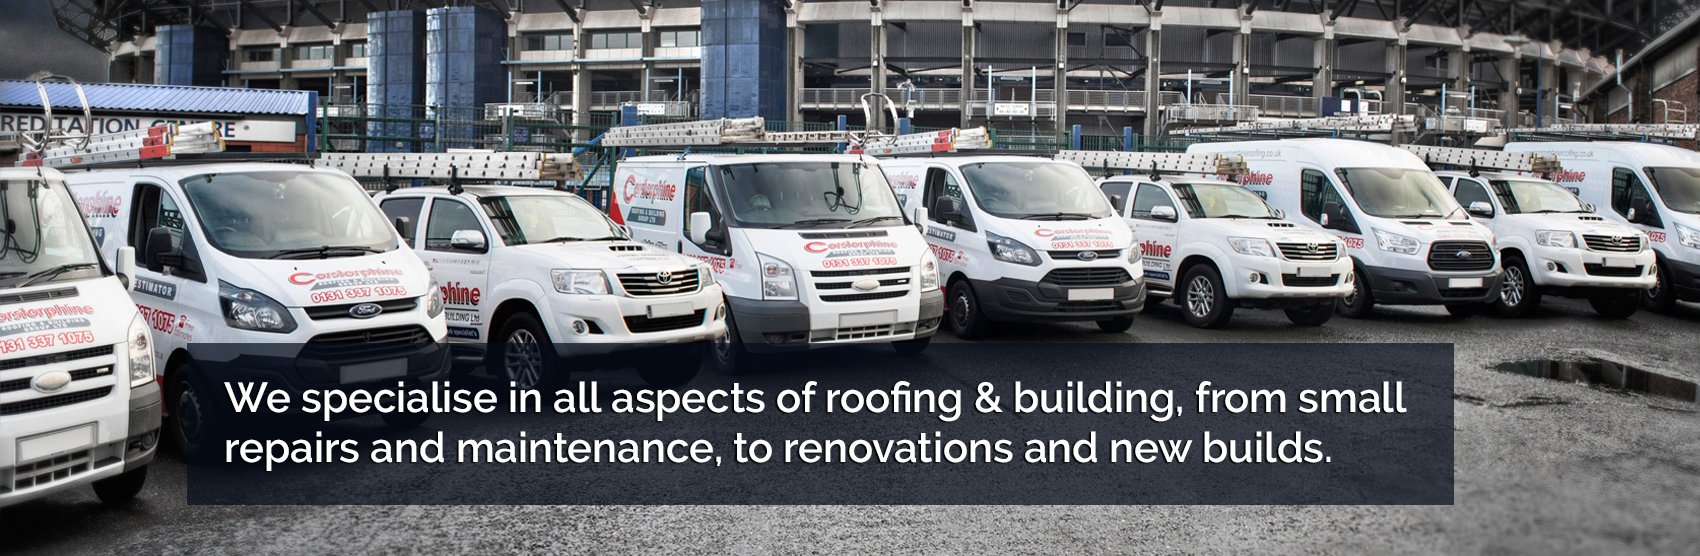 corstorphine roofing & building